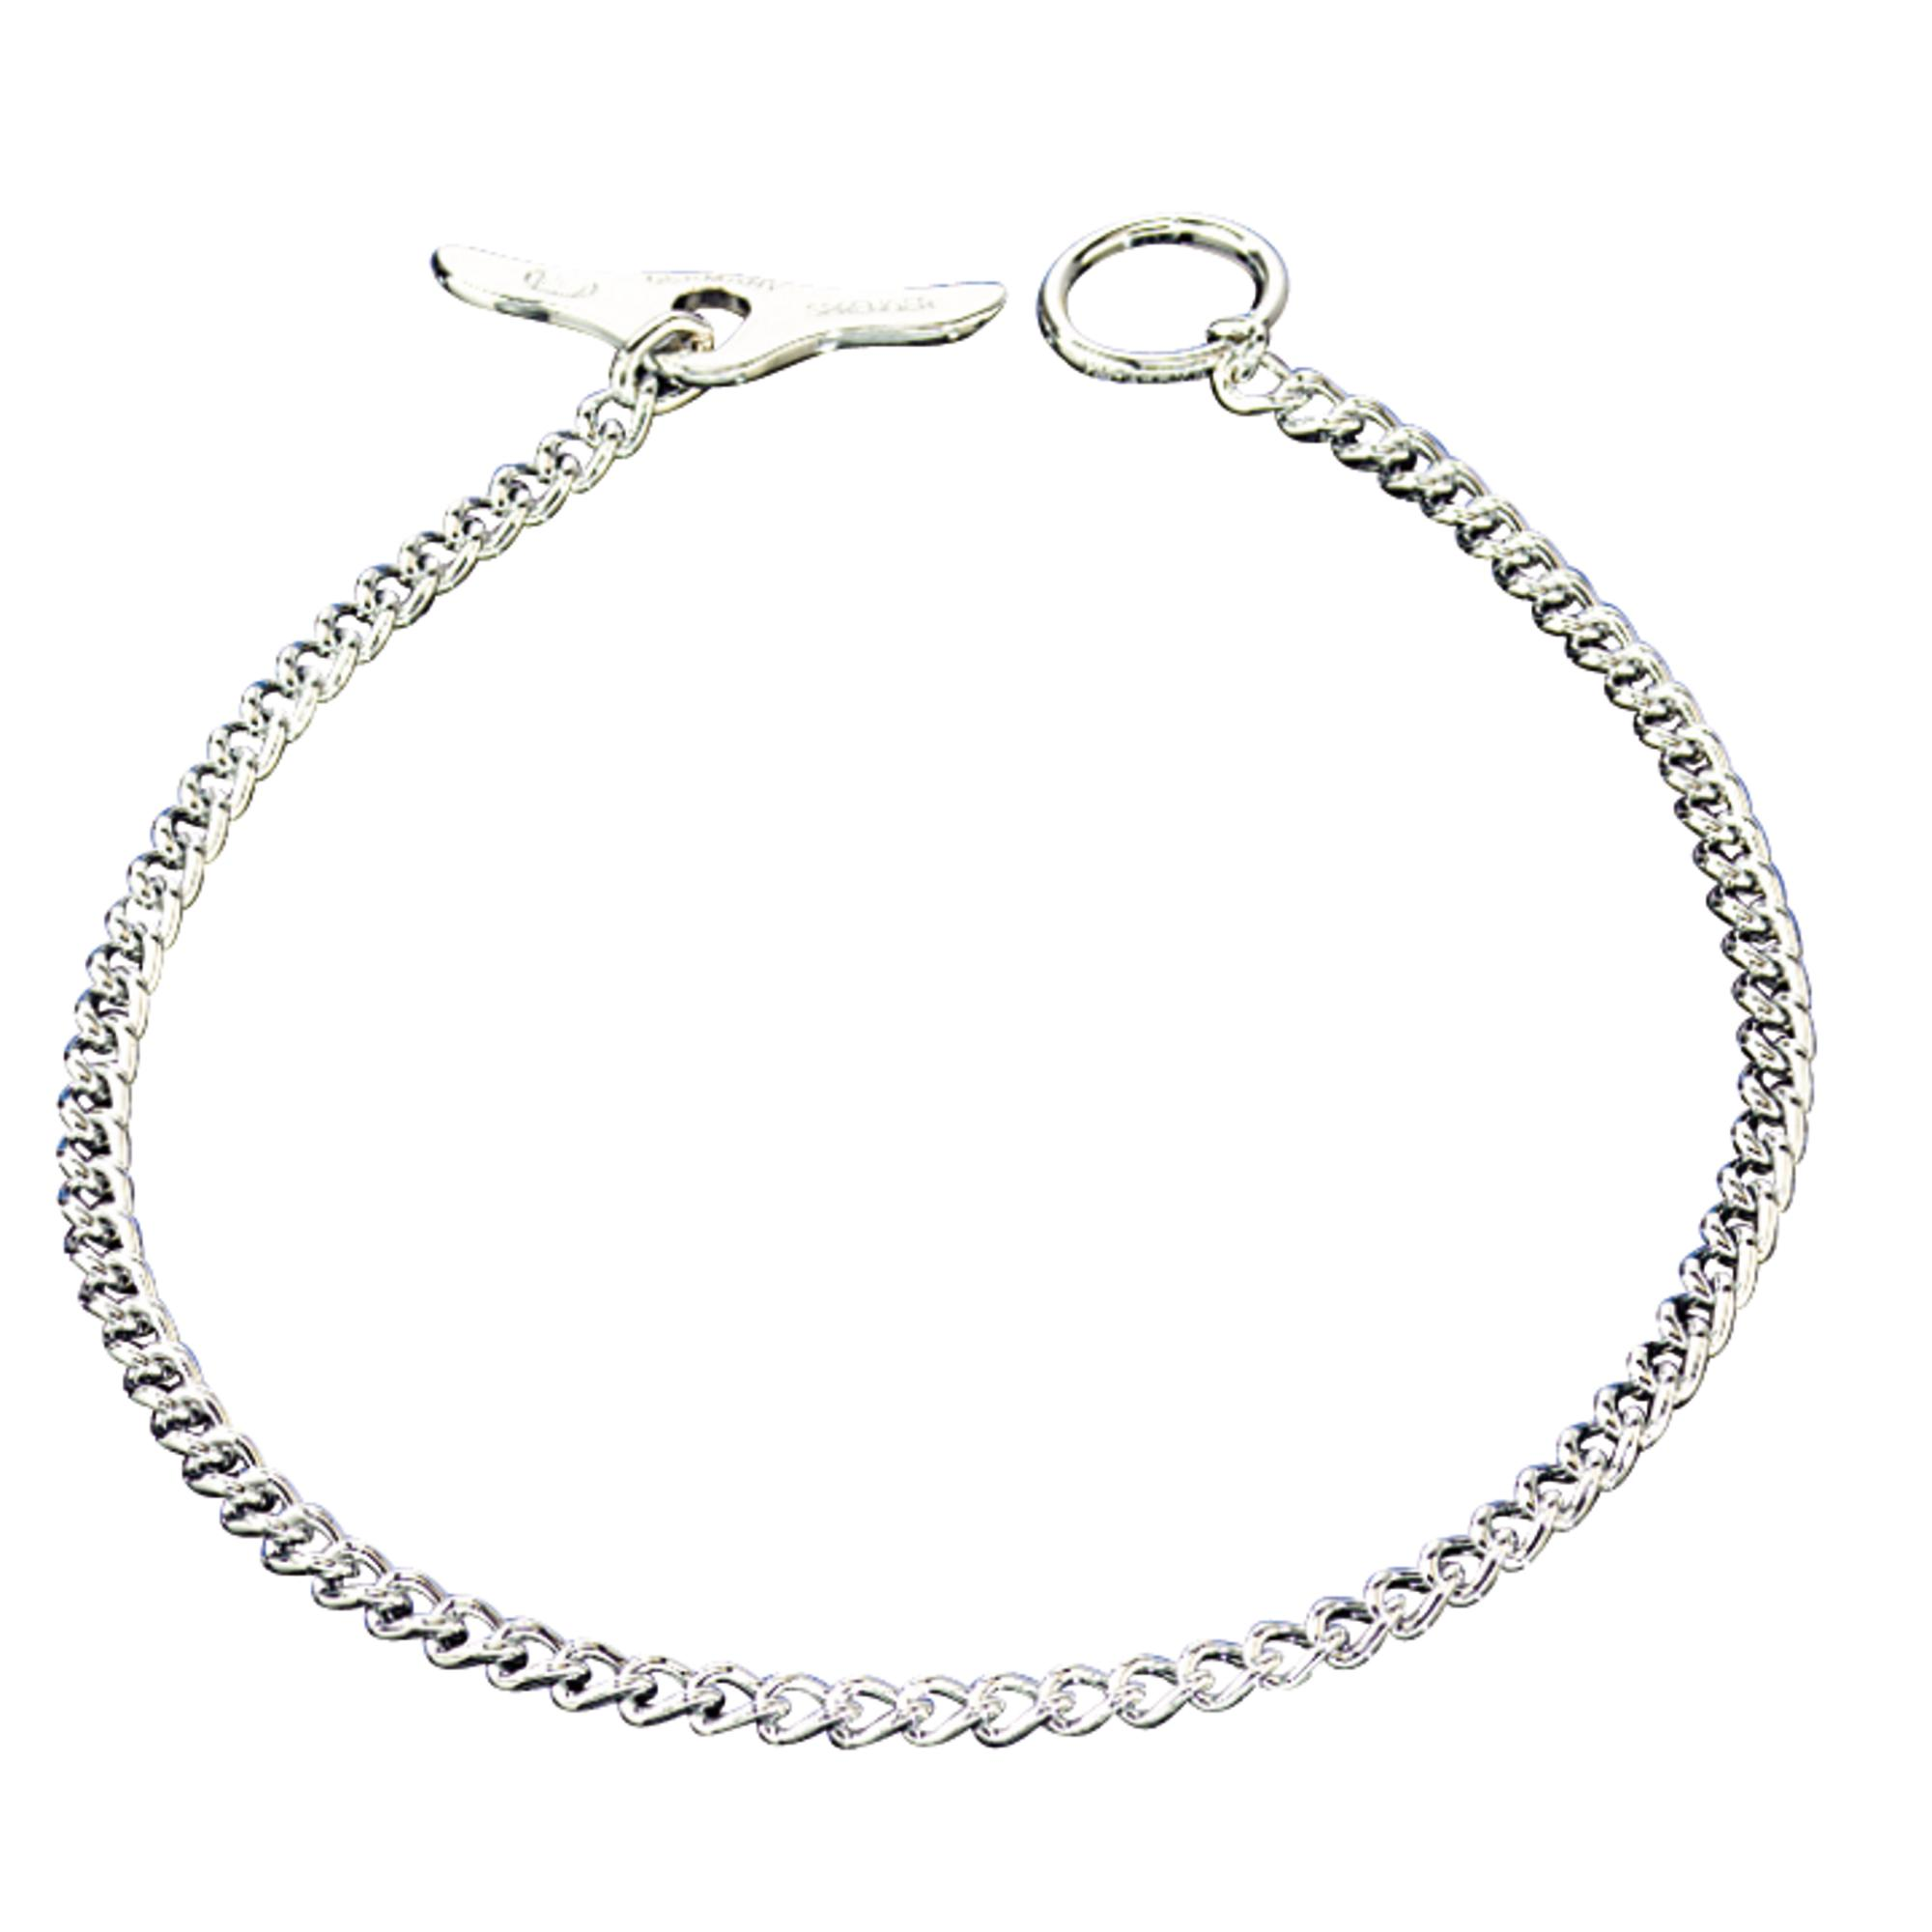 Collar With Toggle Closure Round Links Steel Chrome